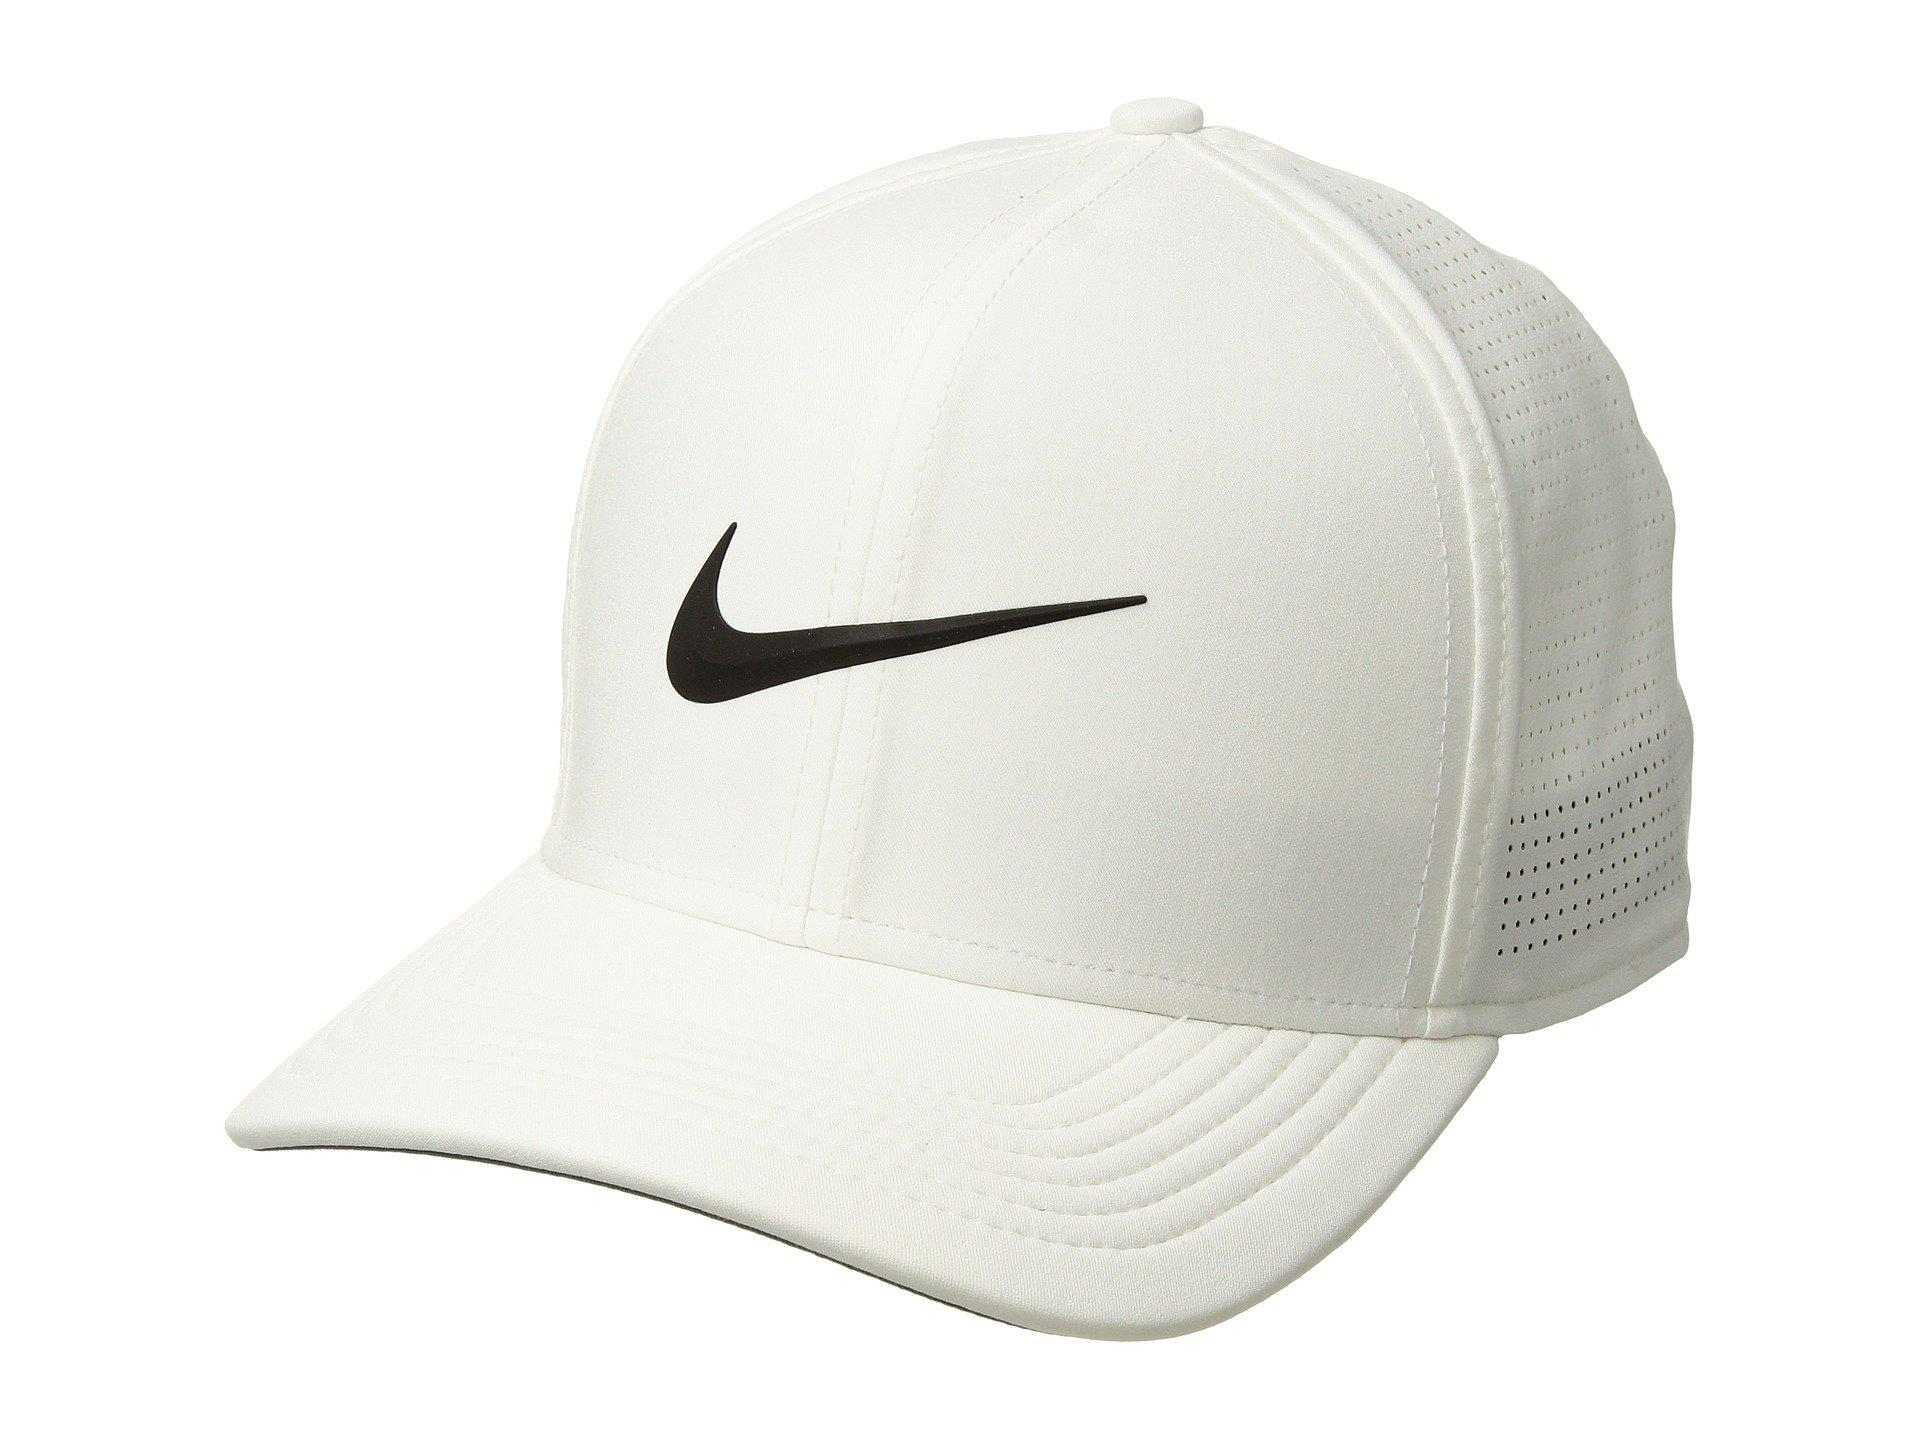 Lyst - Nike Aerobill Clc99 Cap Perf (olive Canvas anthracite white ... 66a4186f6cea